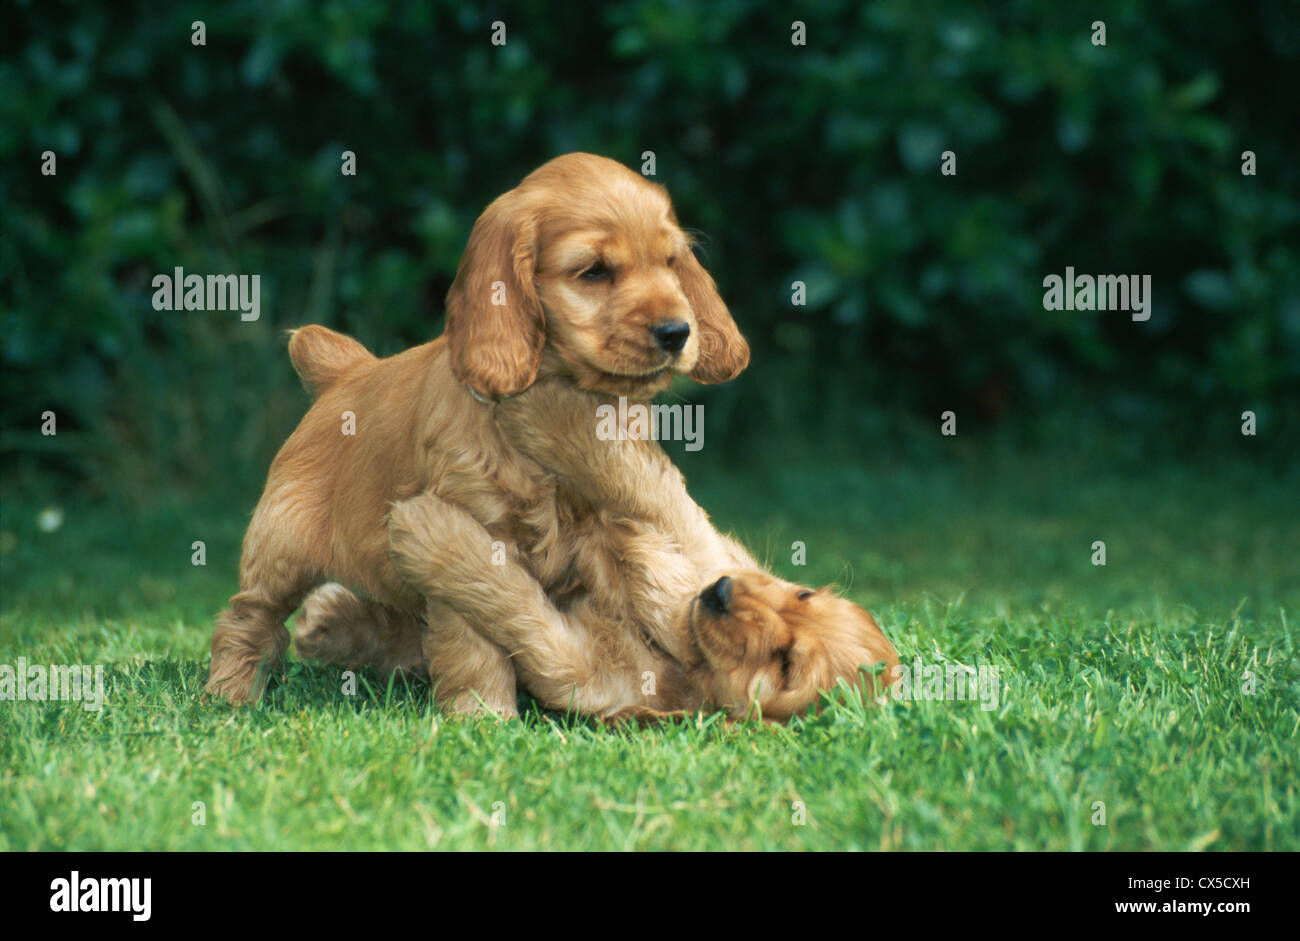 Two English Cocker Spaniel Puppies Playing Ireland Stock Photo Alamy